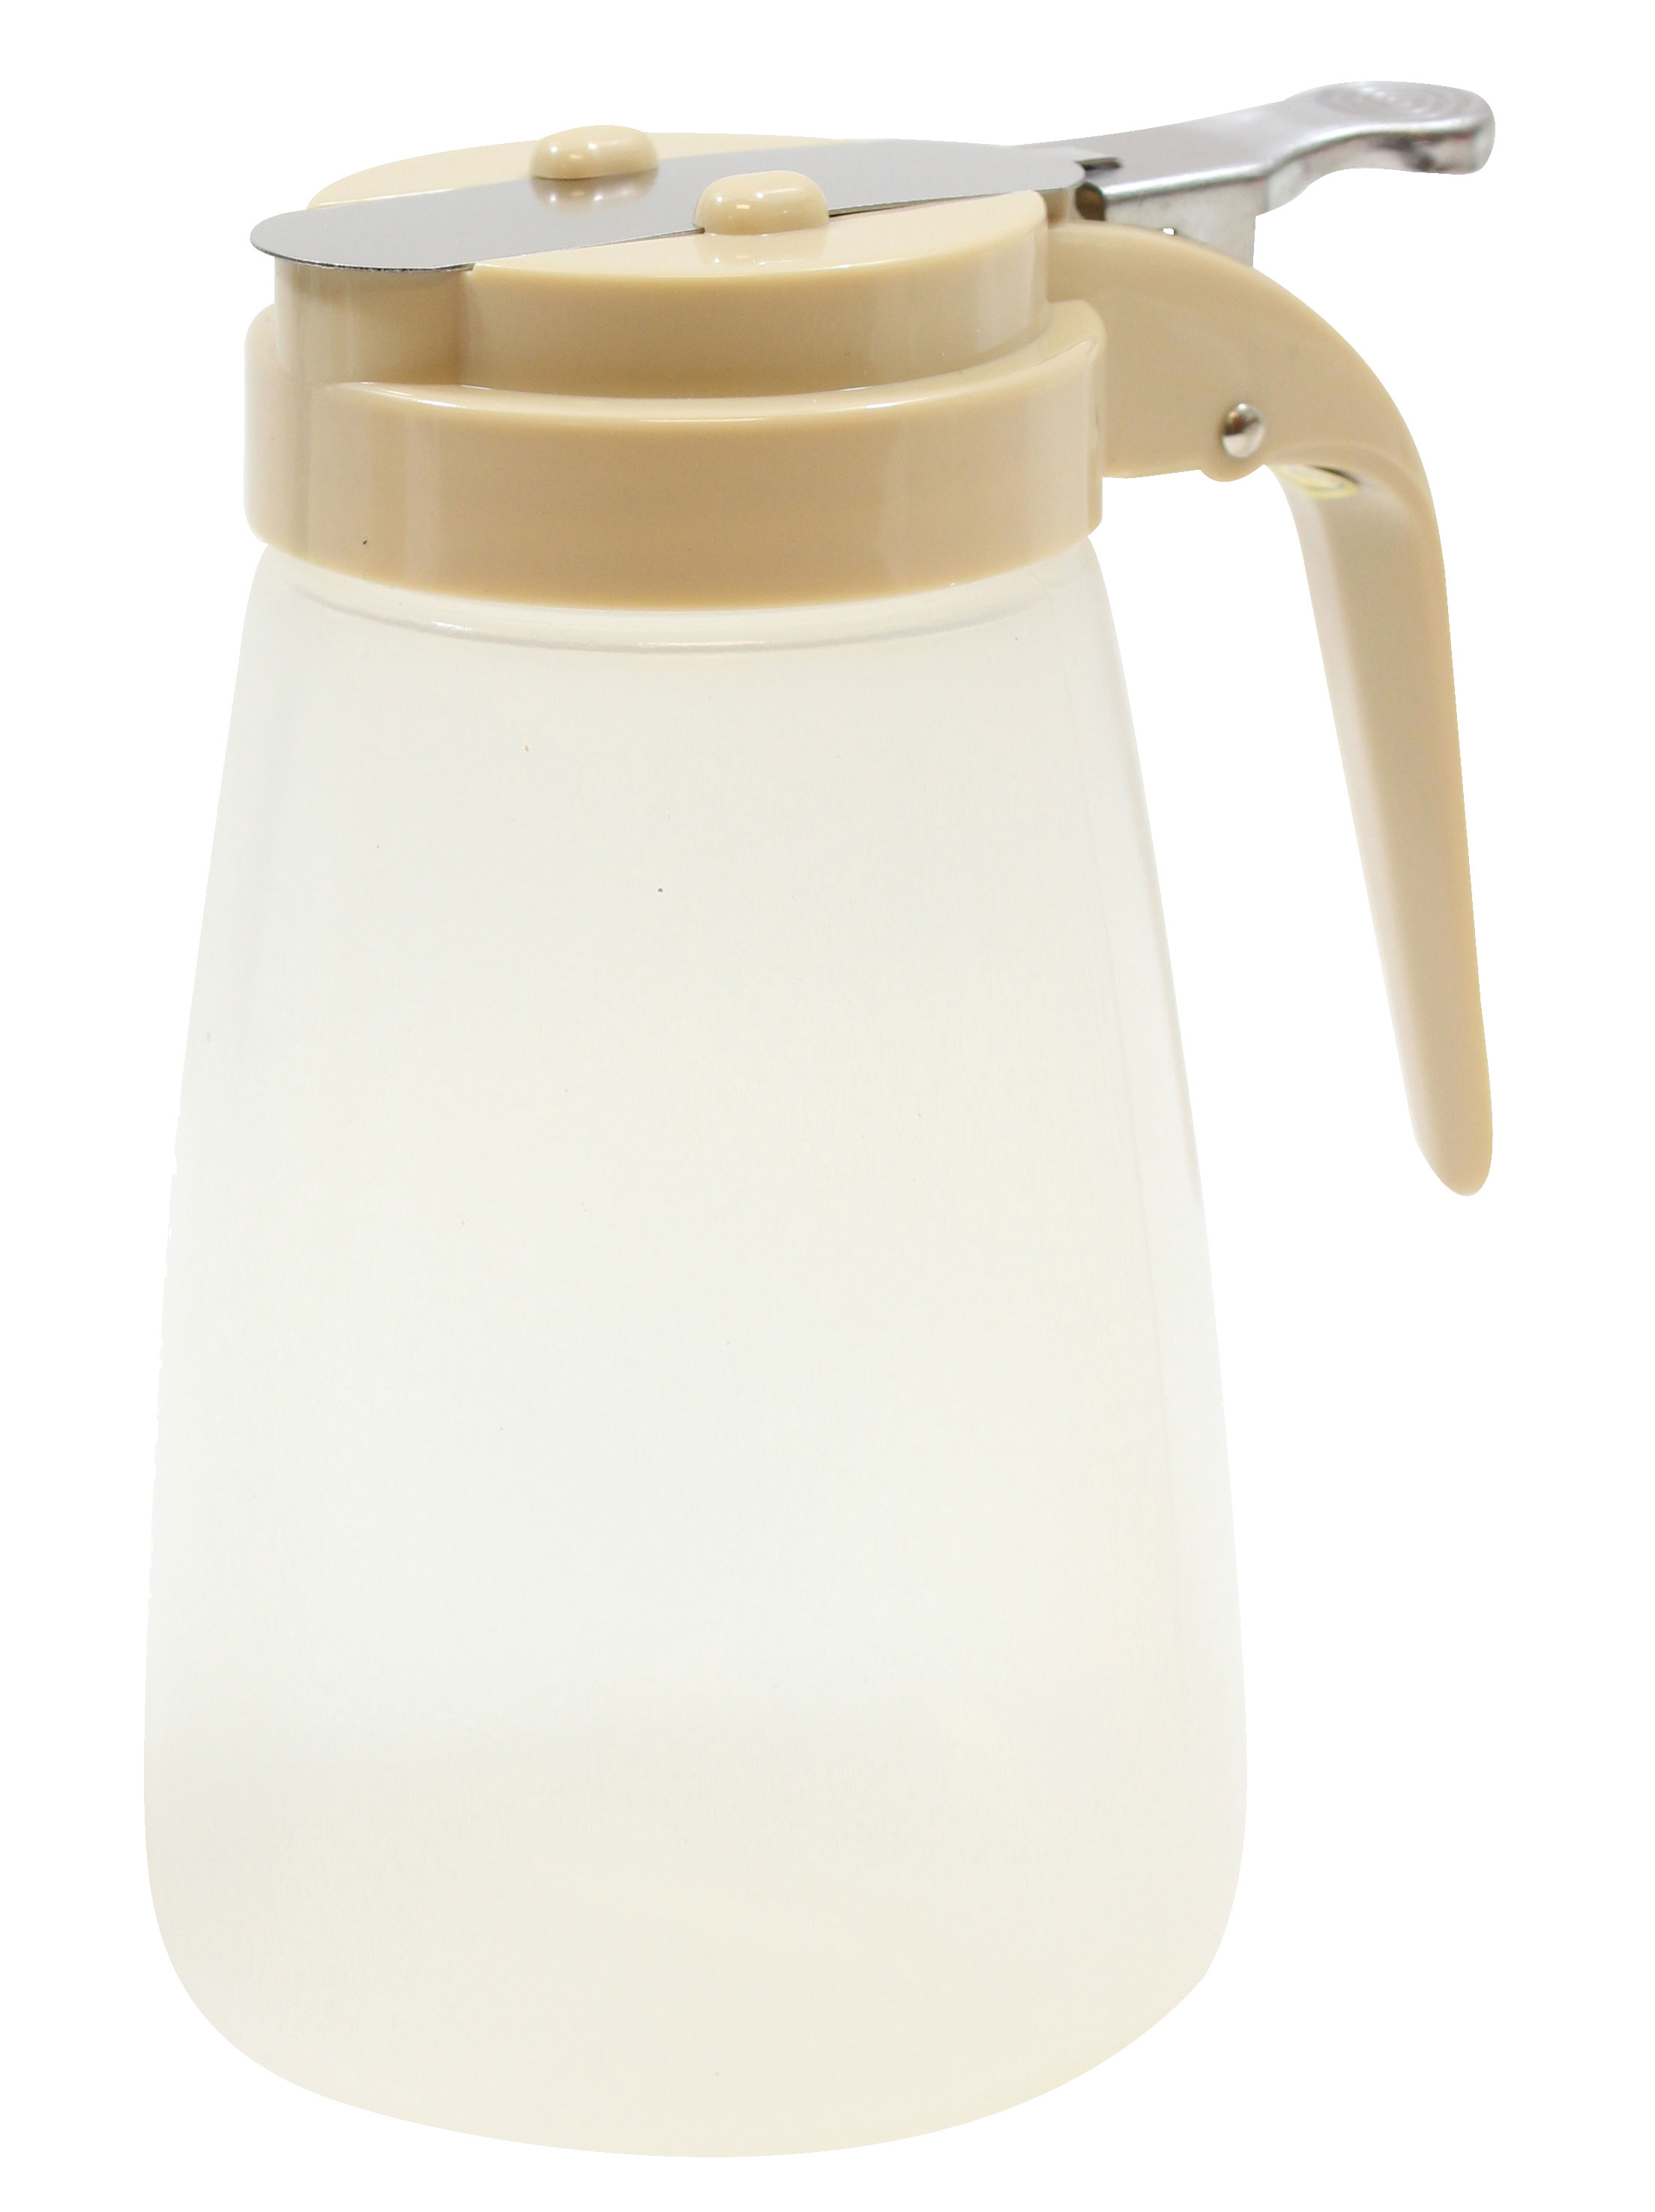 TableCraft Products PP10A syrup pourer